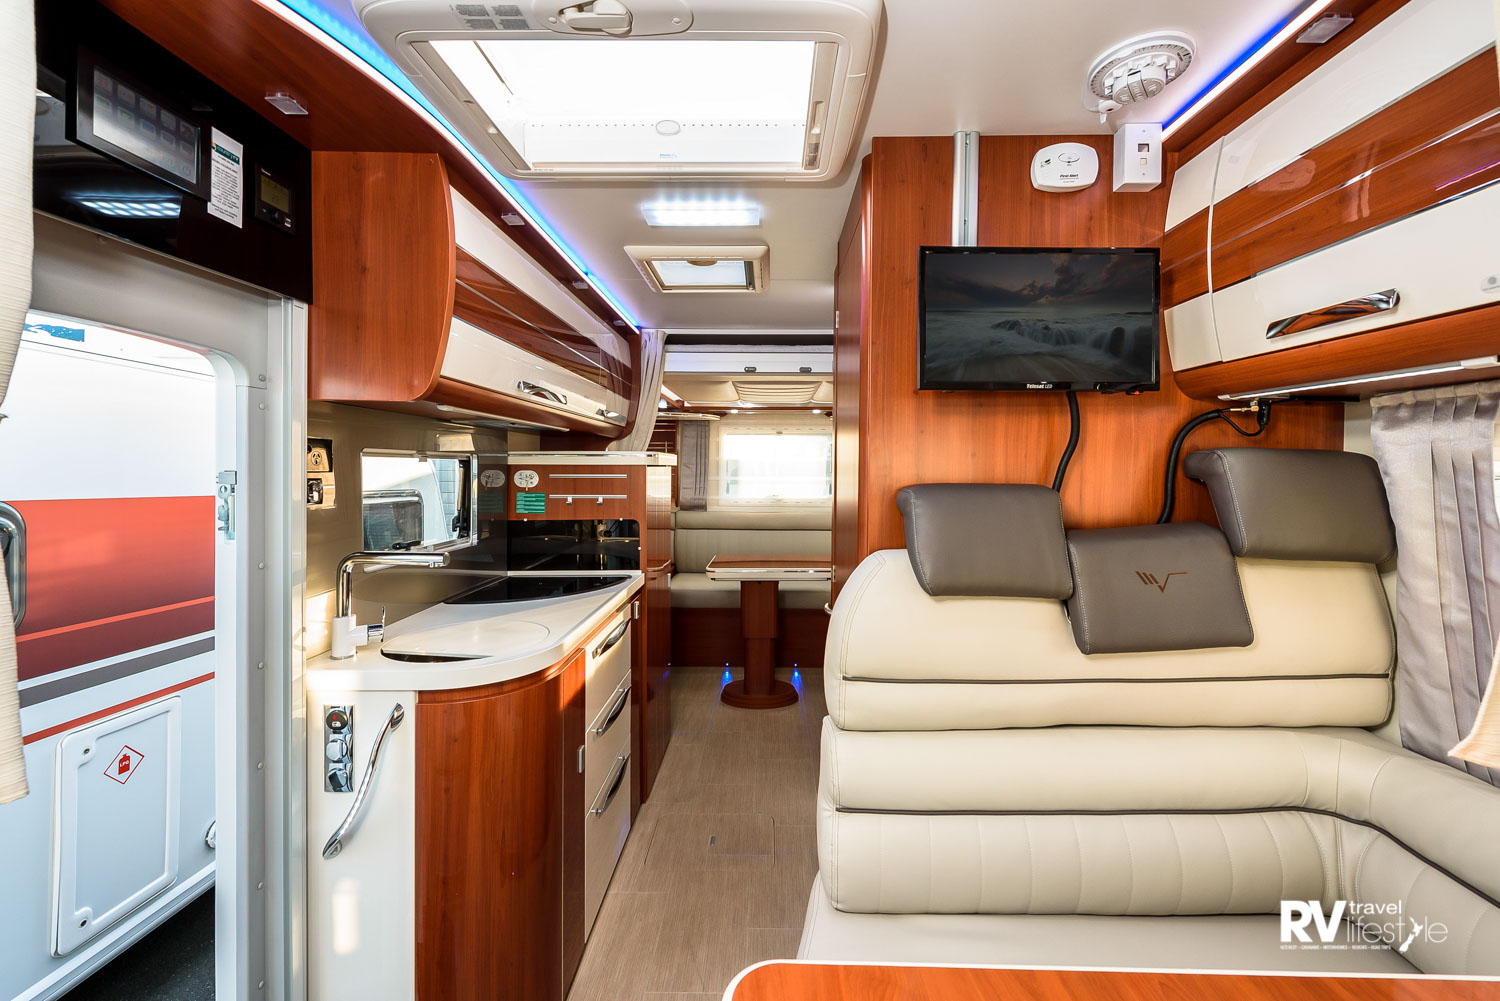 From the kitchen looking to the rear bedroom of the K-Yacht 79 model, the vanity, sink unit and mirror take centre stage. This area has a step up, and you may notice the lift-out storage lid in the floor